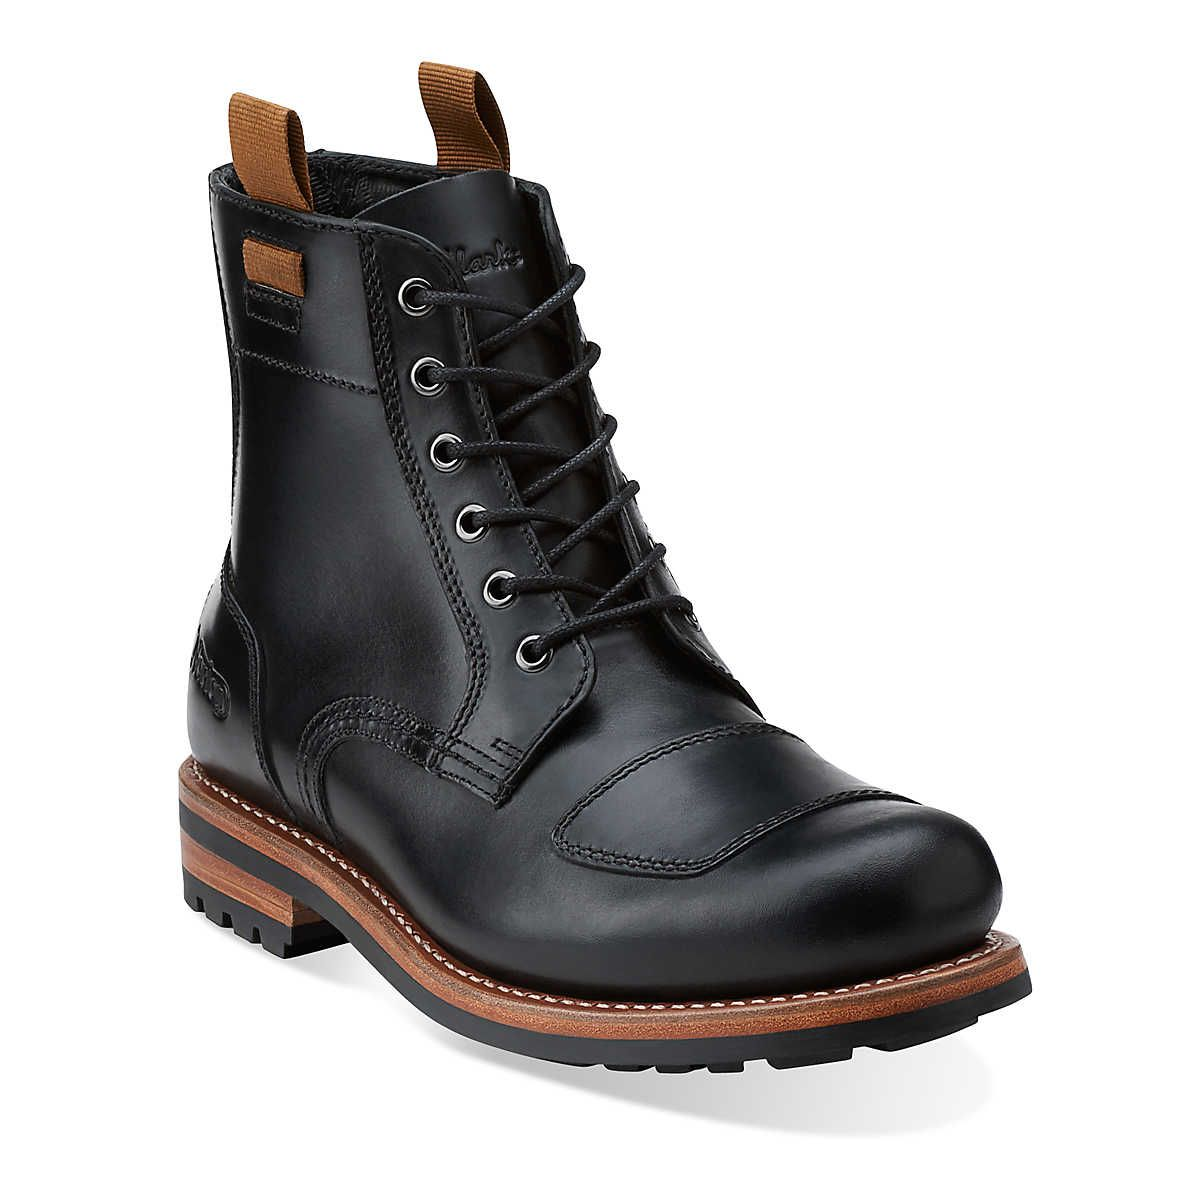 In Boots Norton Leather From Black Men's Clarks Rise Mens qr6gcqUw